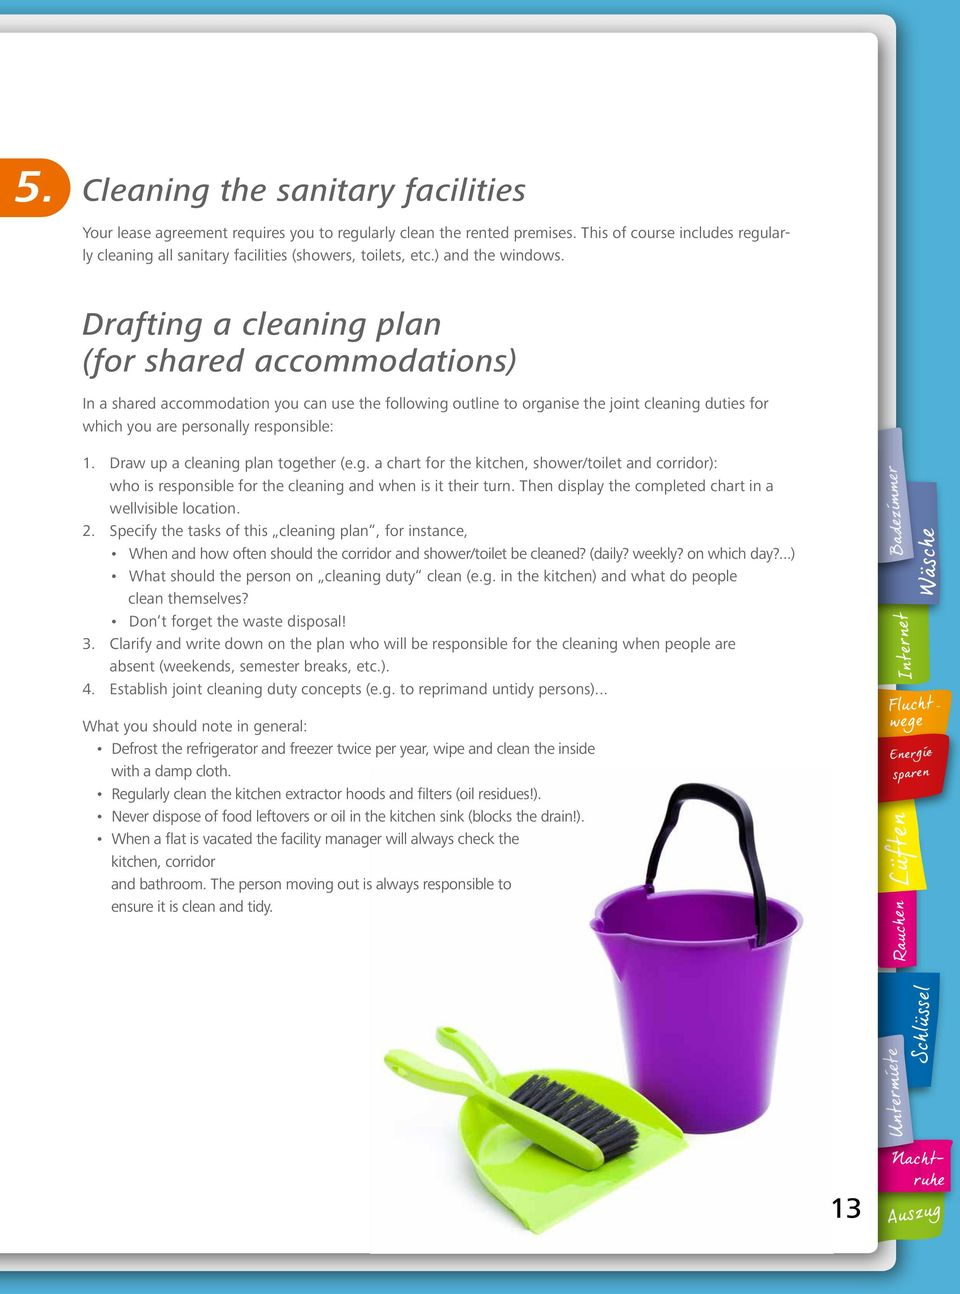 Drafting a cleaning plan (for shared accommodations) In a shared accommodation you can use the following outline to organise the joint cleaning duties for which you are personally responsible: 1.